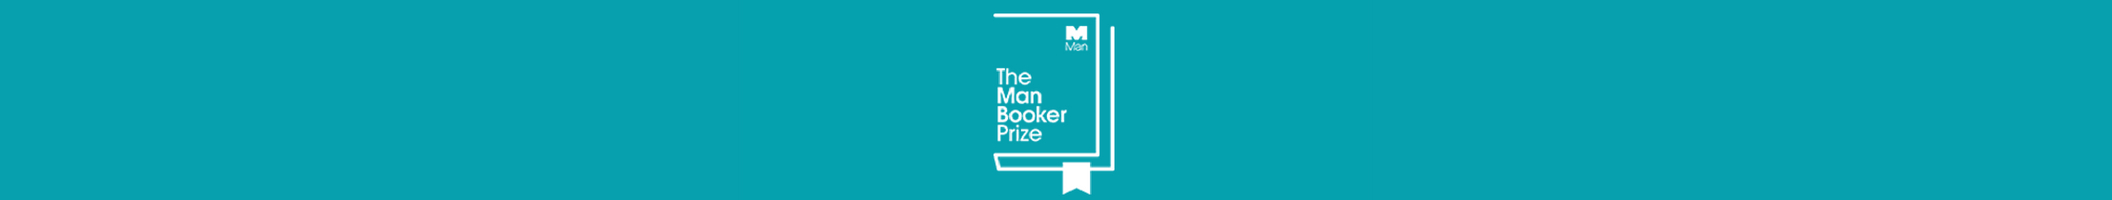 The Man Booker Prize Banner